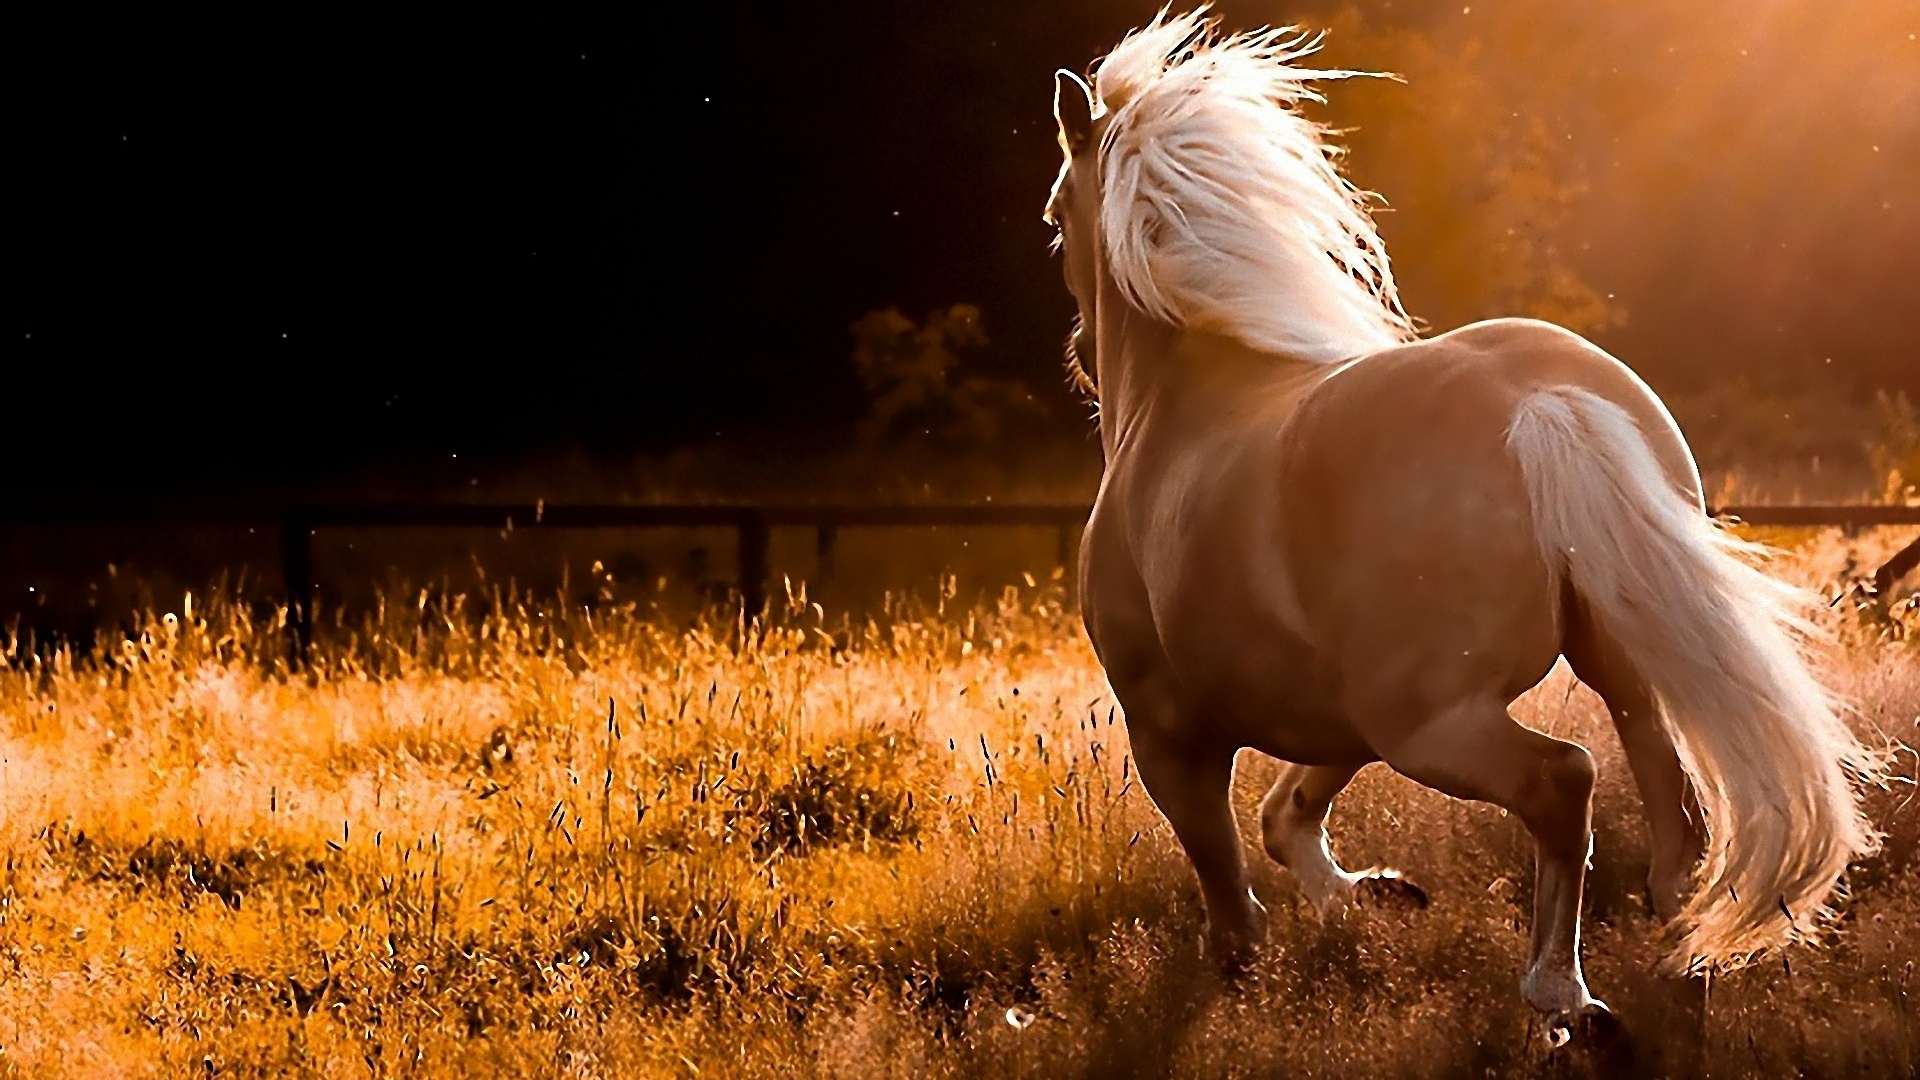 30 Exclusive Horse Pictures For You 1920x1080